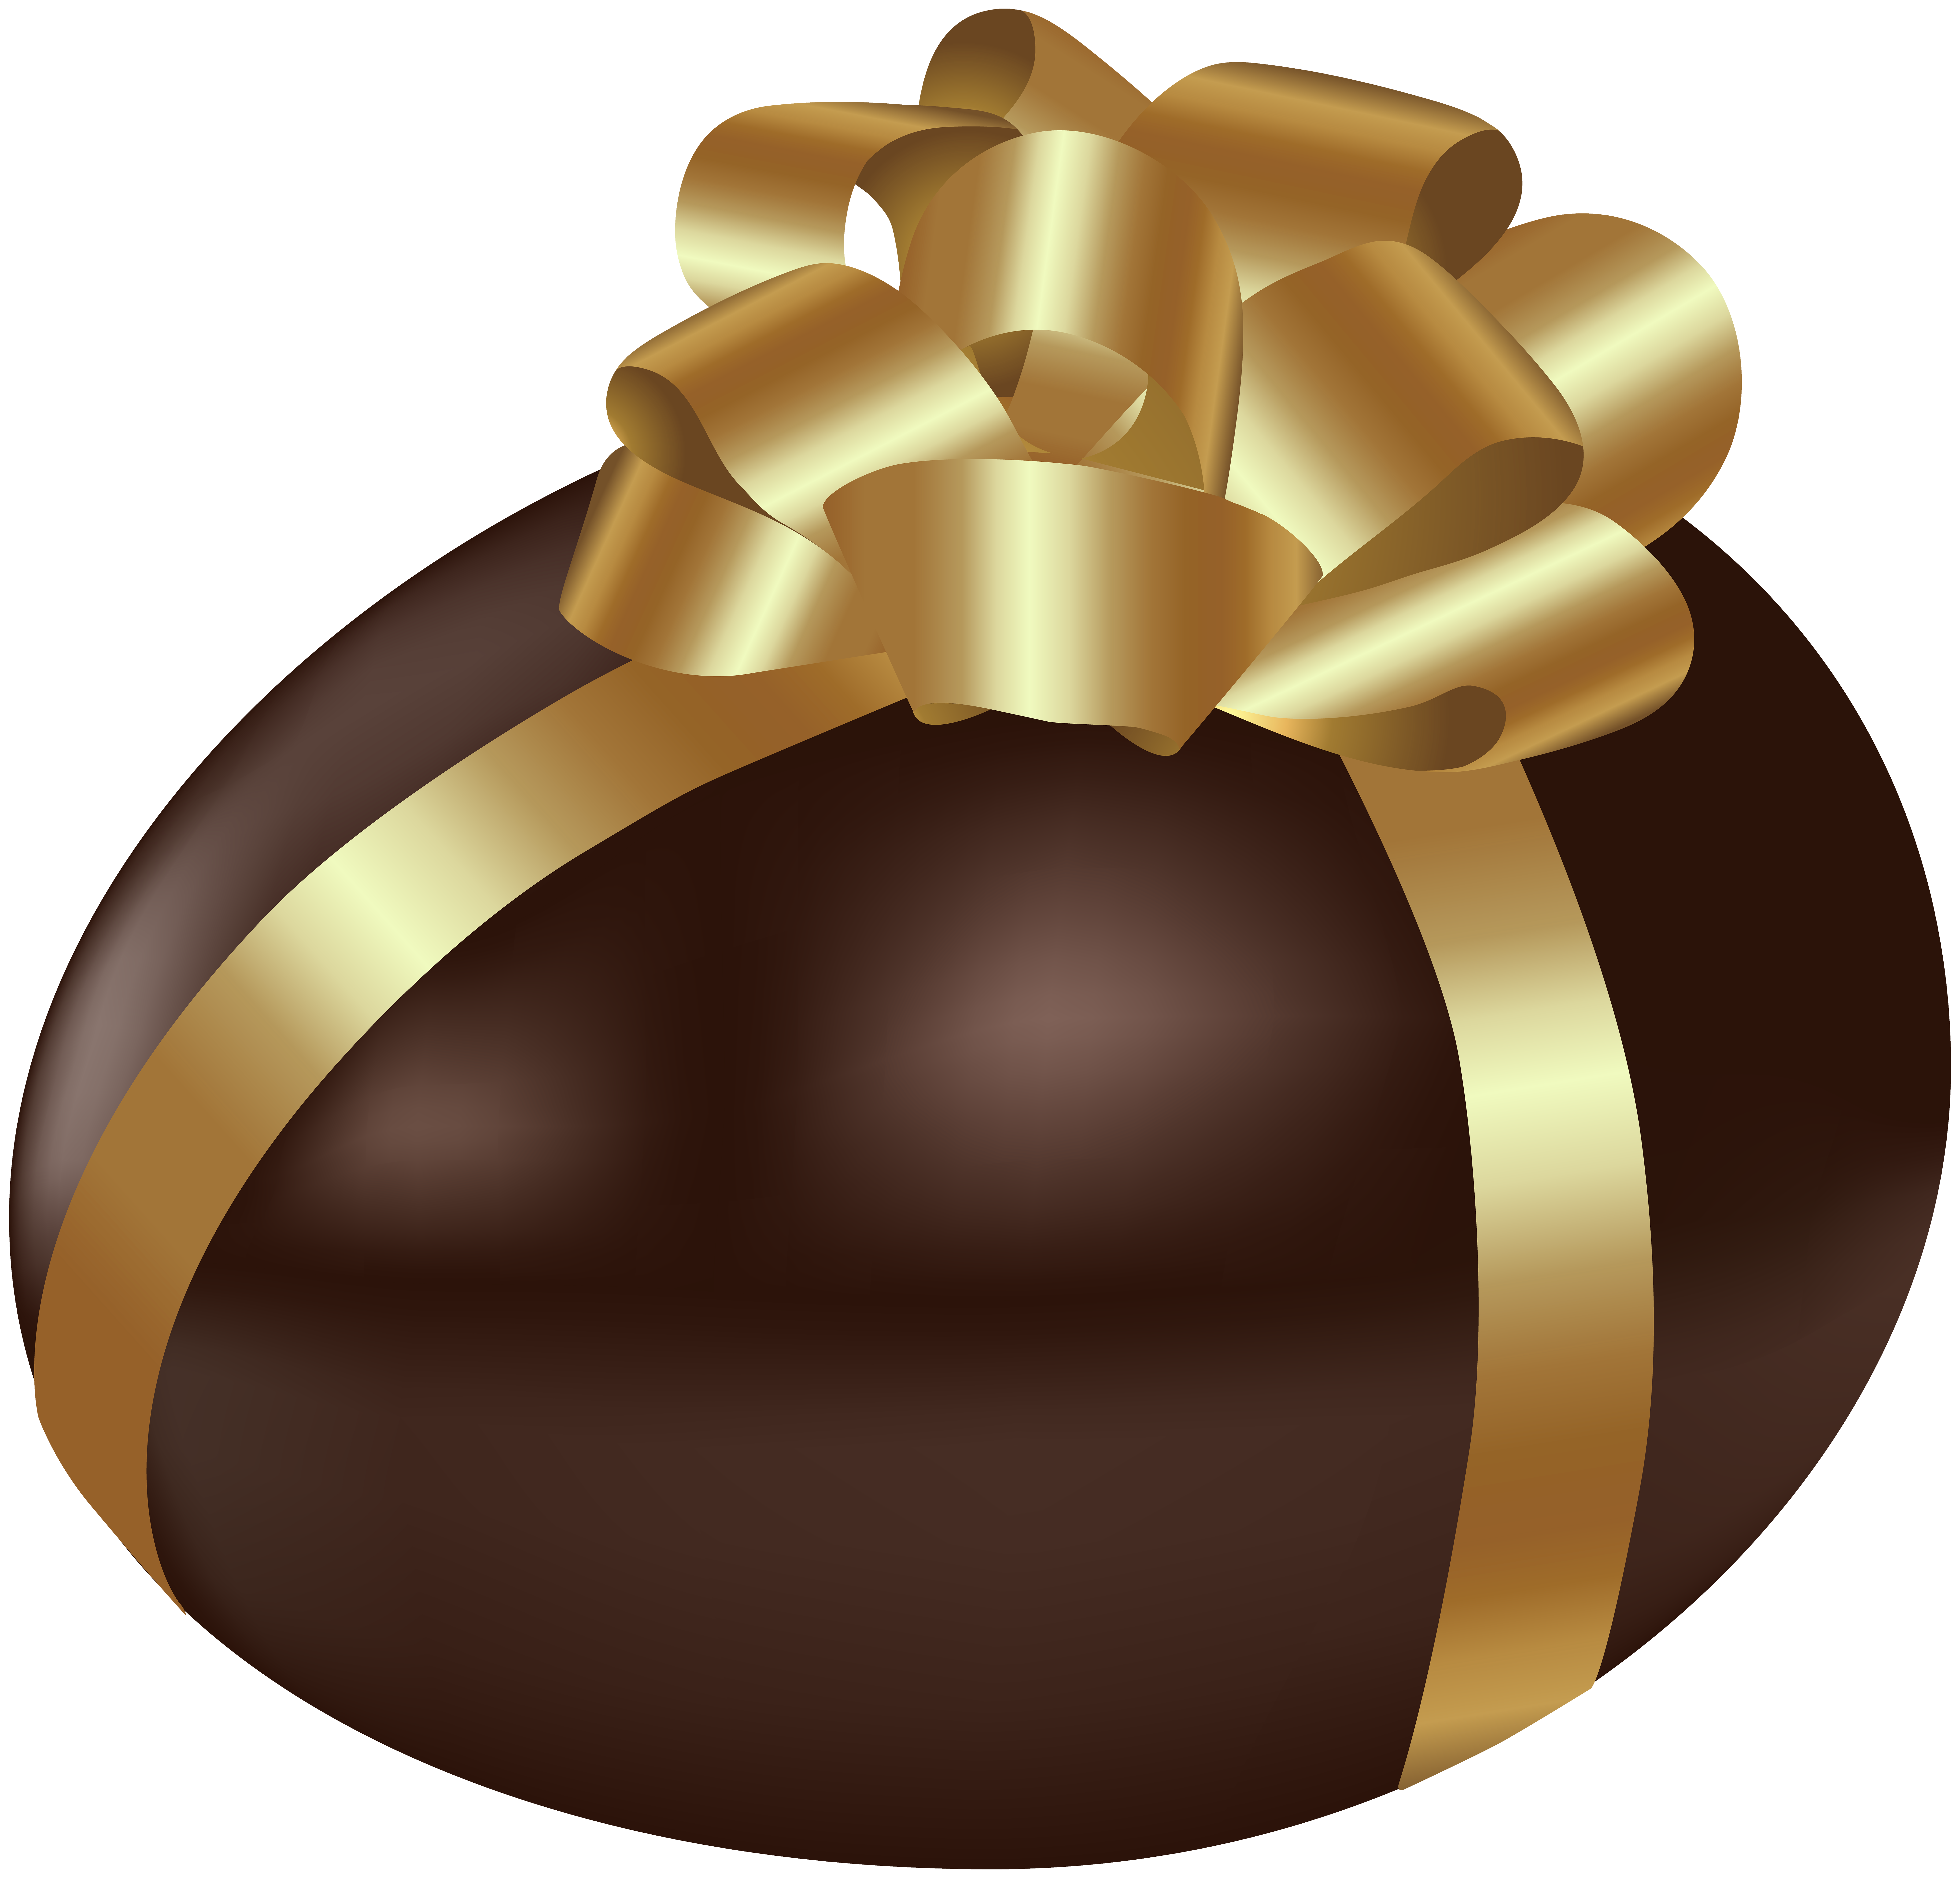 Chocolate clipart easter. Egg transparent png clip